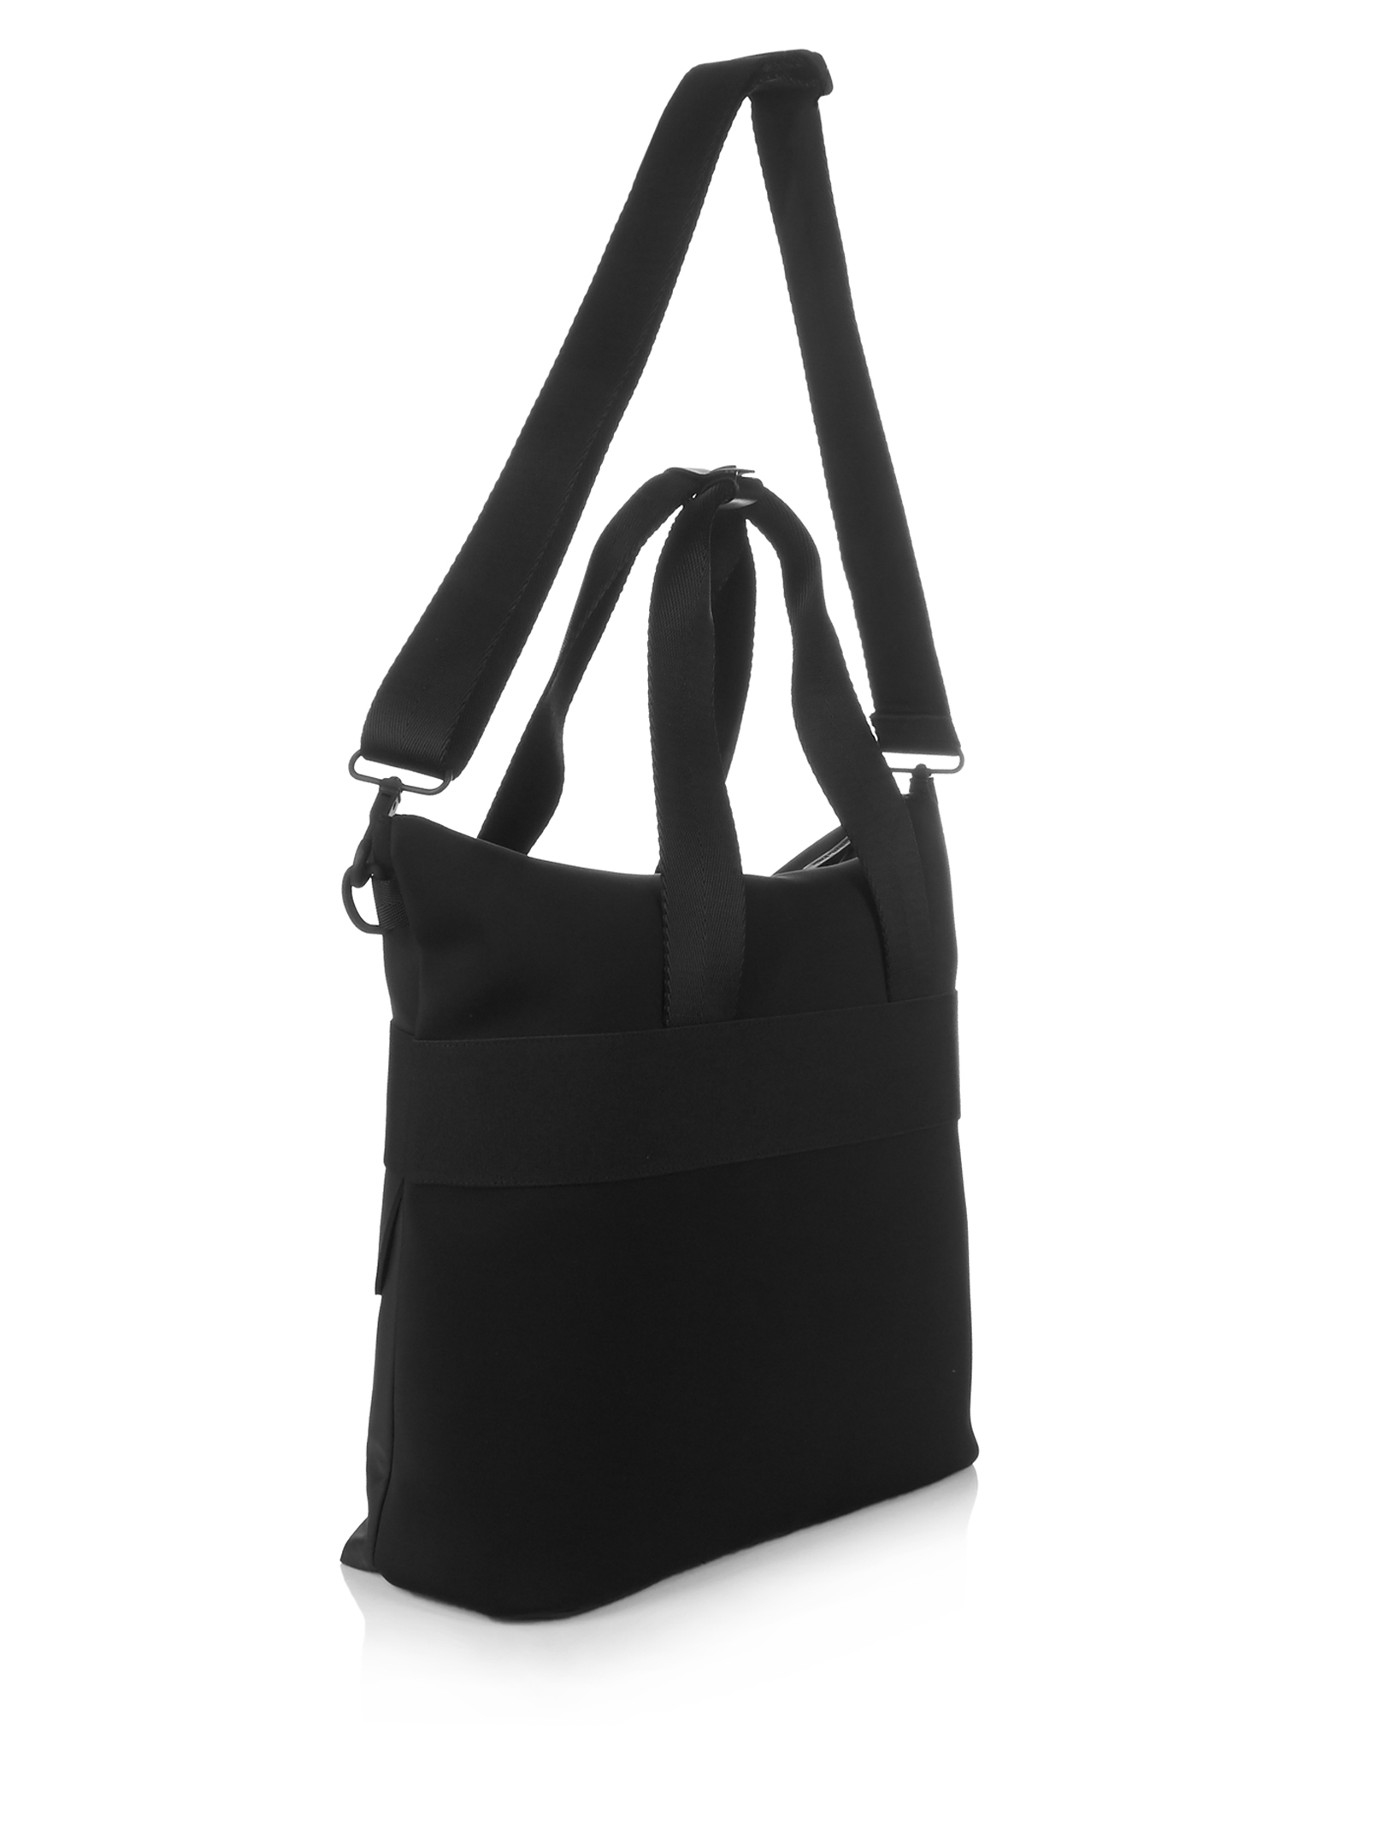 f9dab4a3d Lyst - Y-3 Qasa Tote Bag in Black for Men